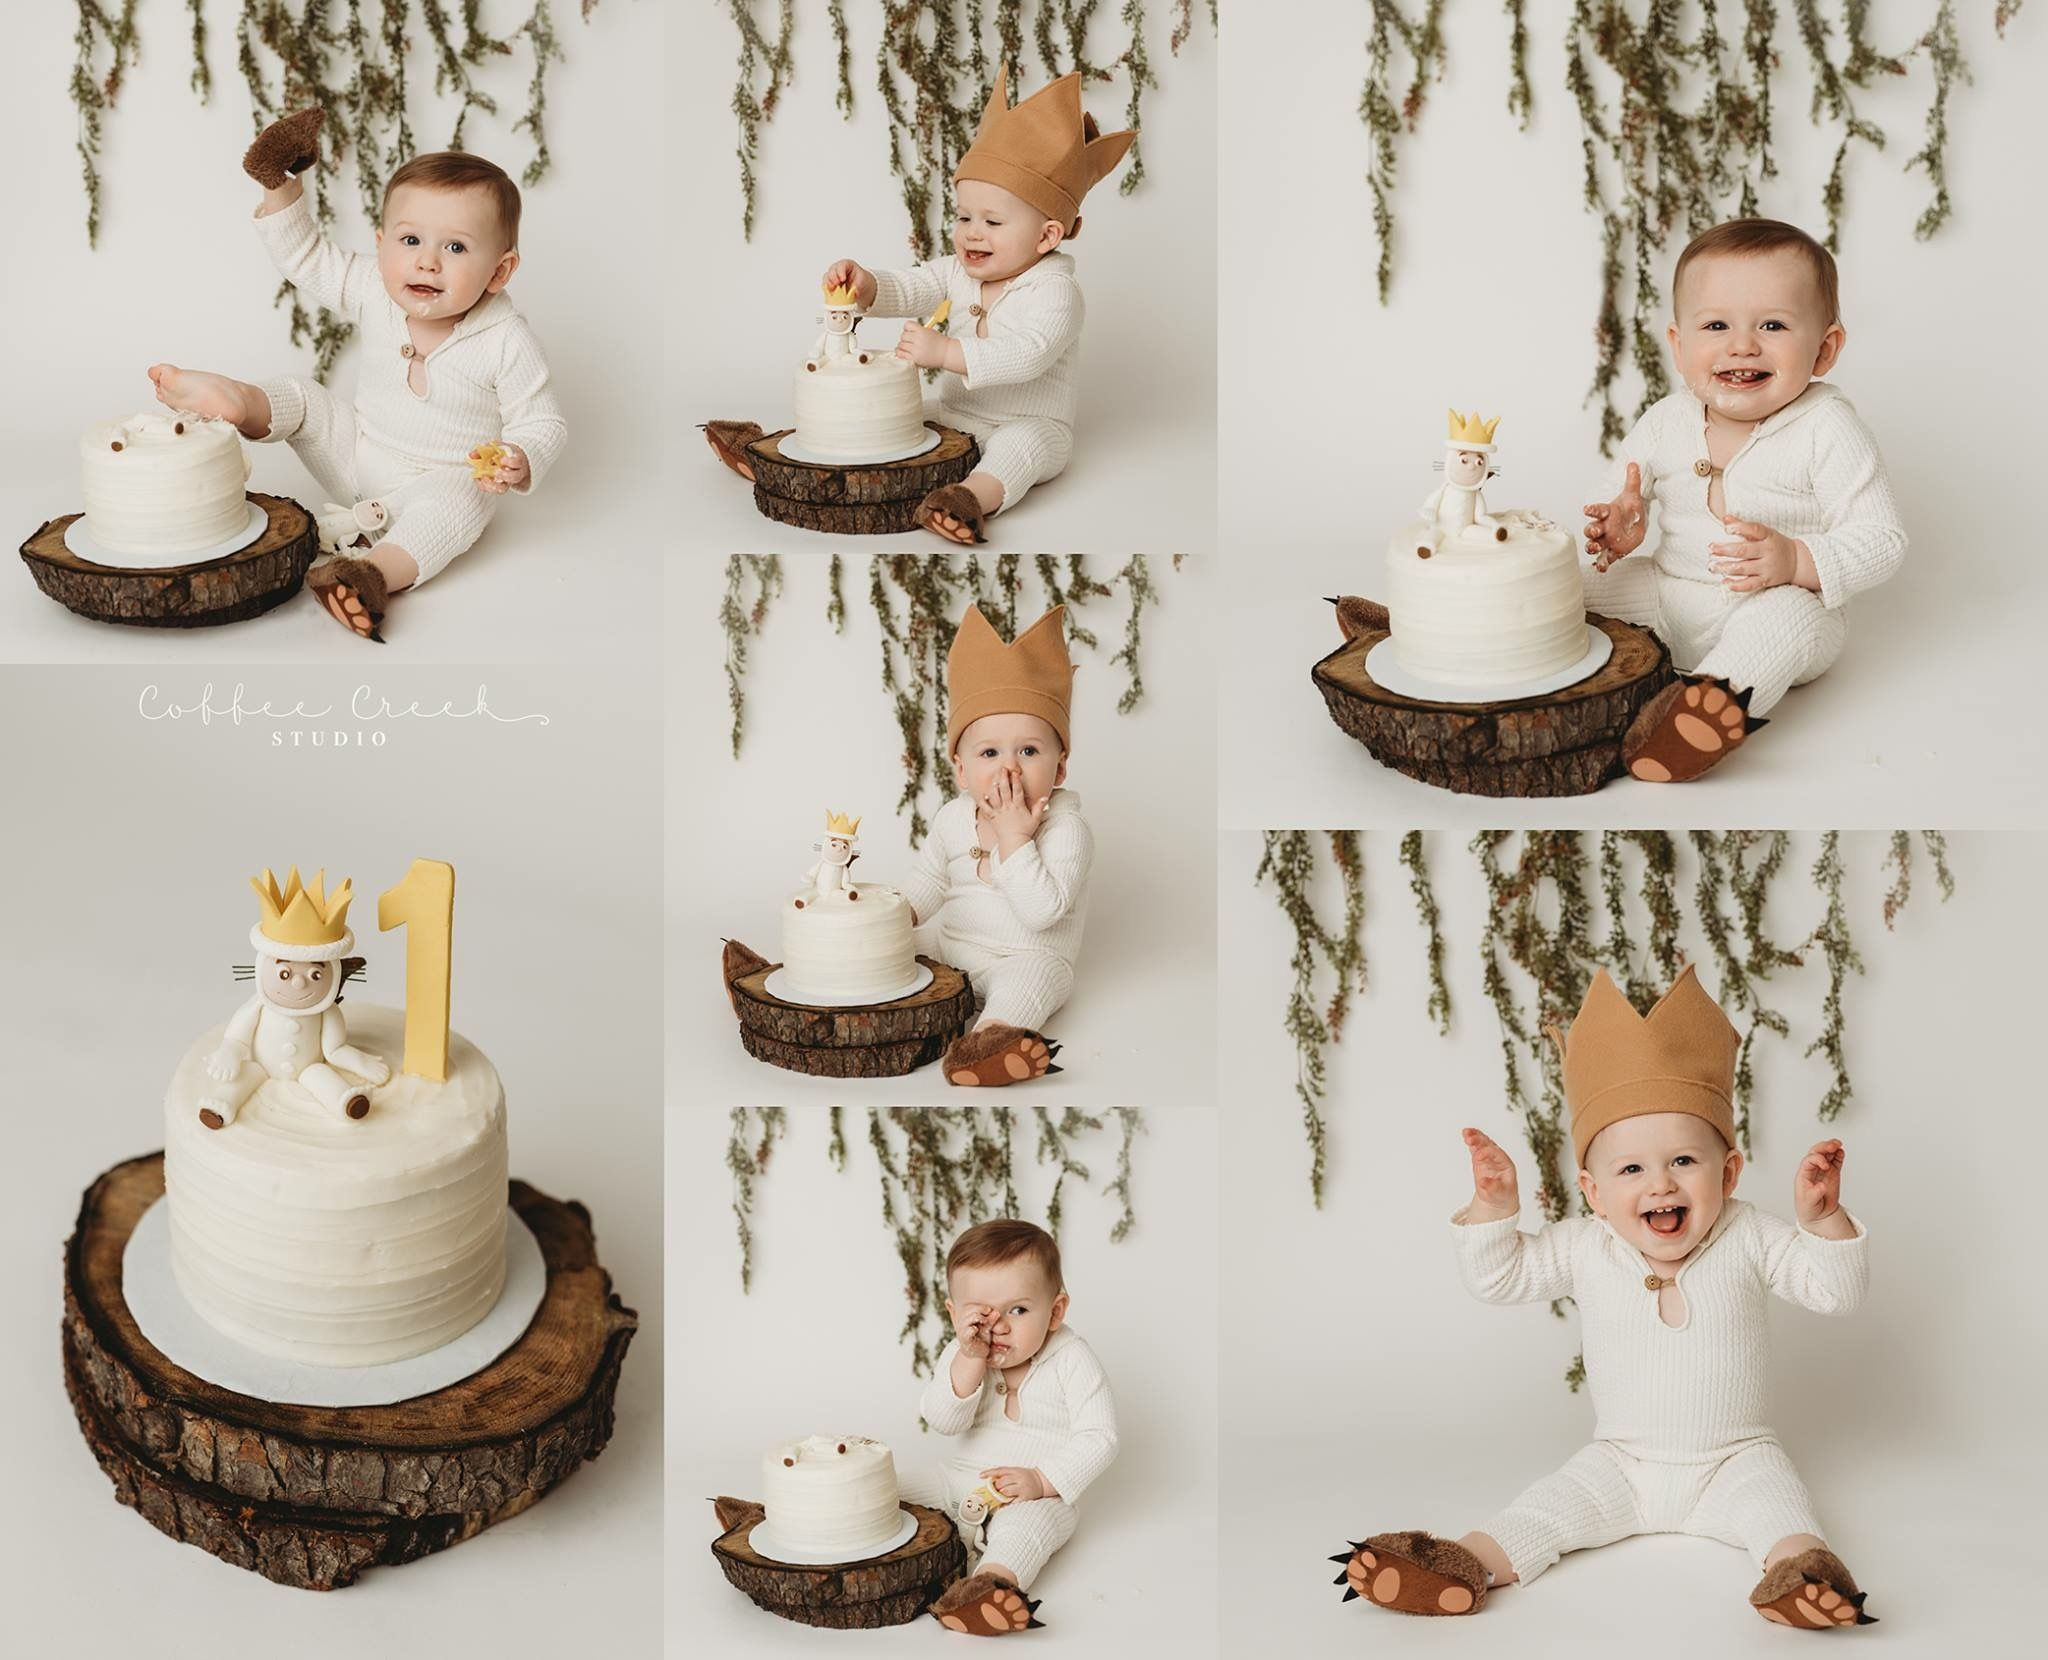 Pin By Anna Linton Cheshire On Cake Smash Boys First Birthday Cake Smash Cake Photos Boy Simple First Birthday